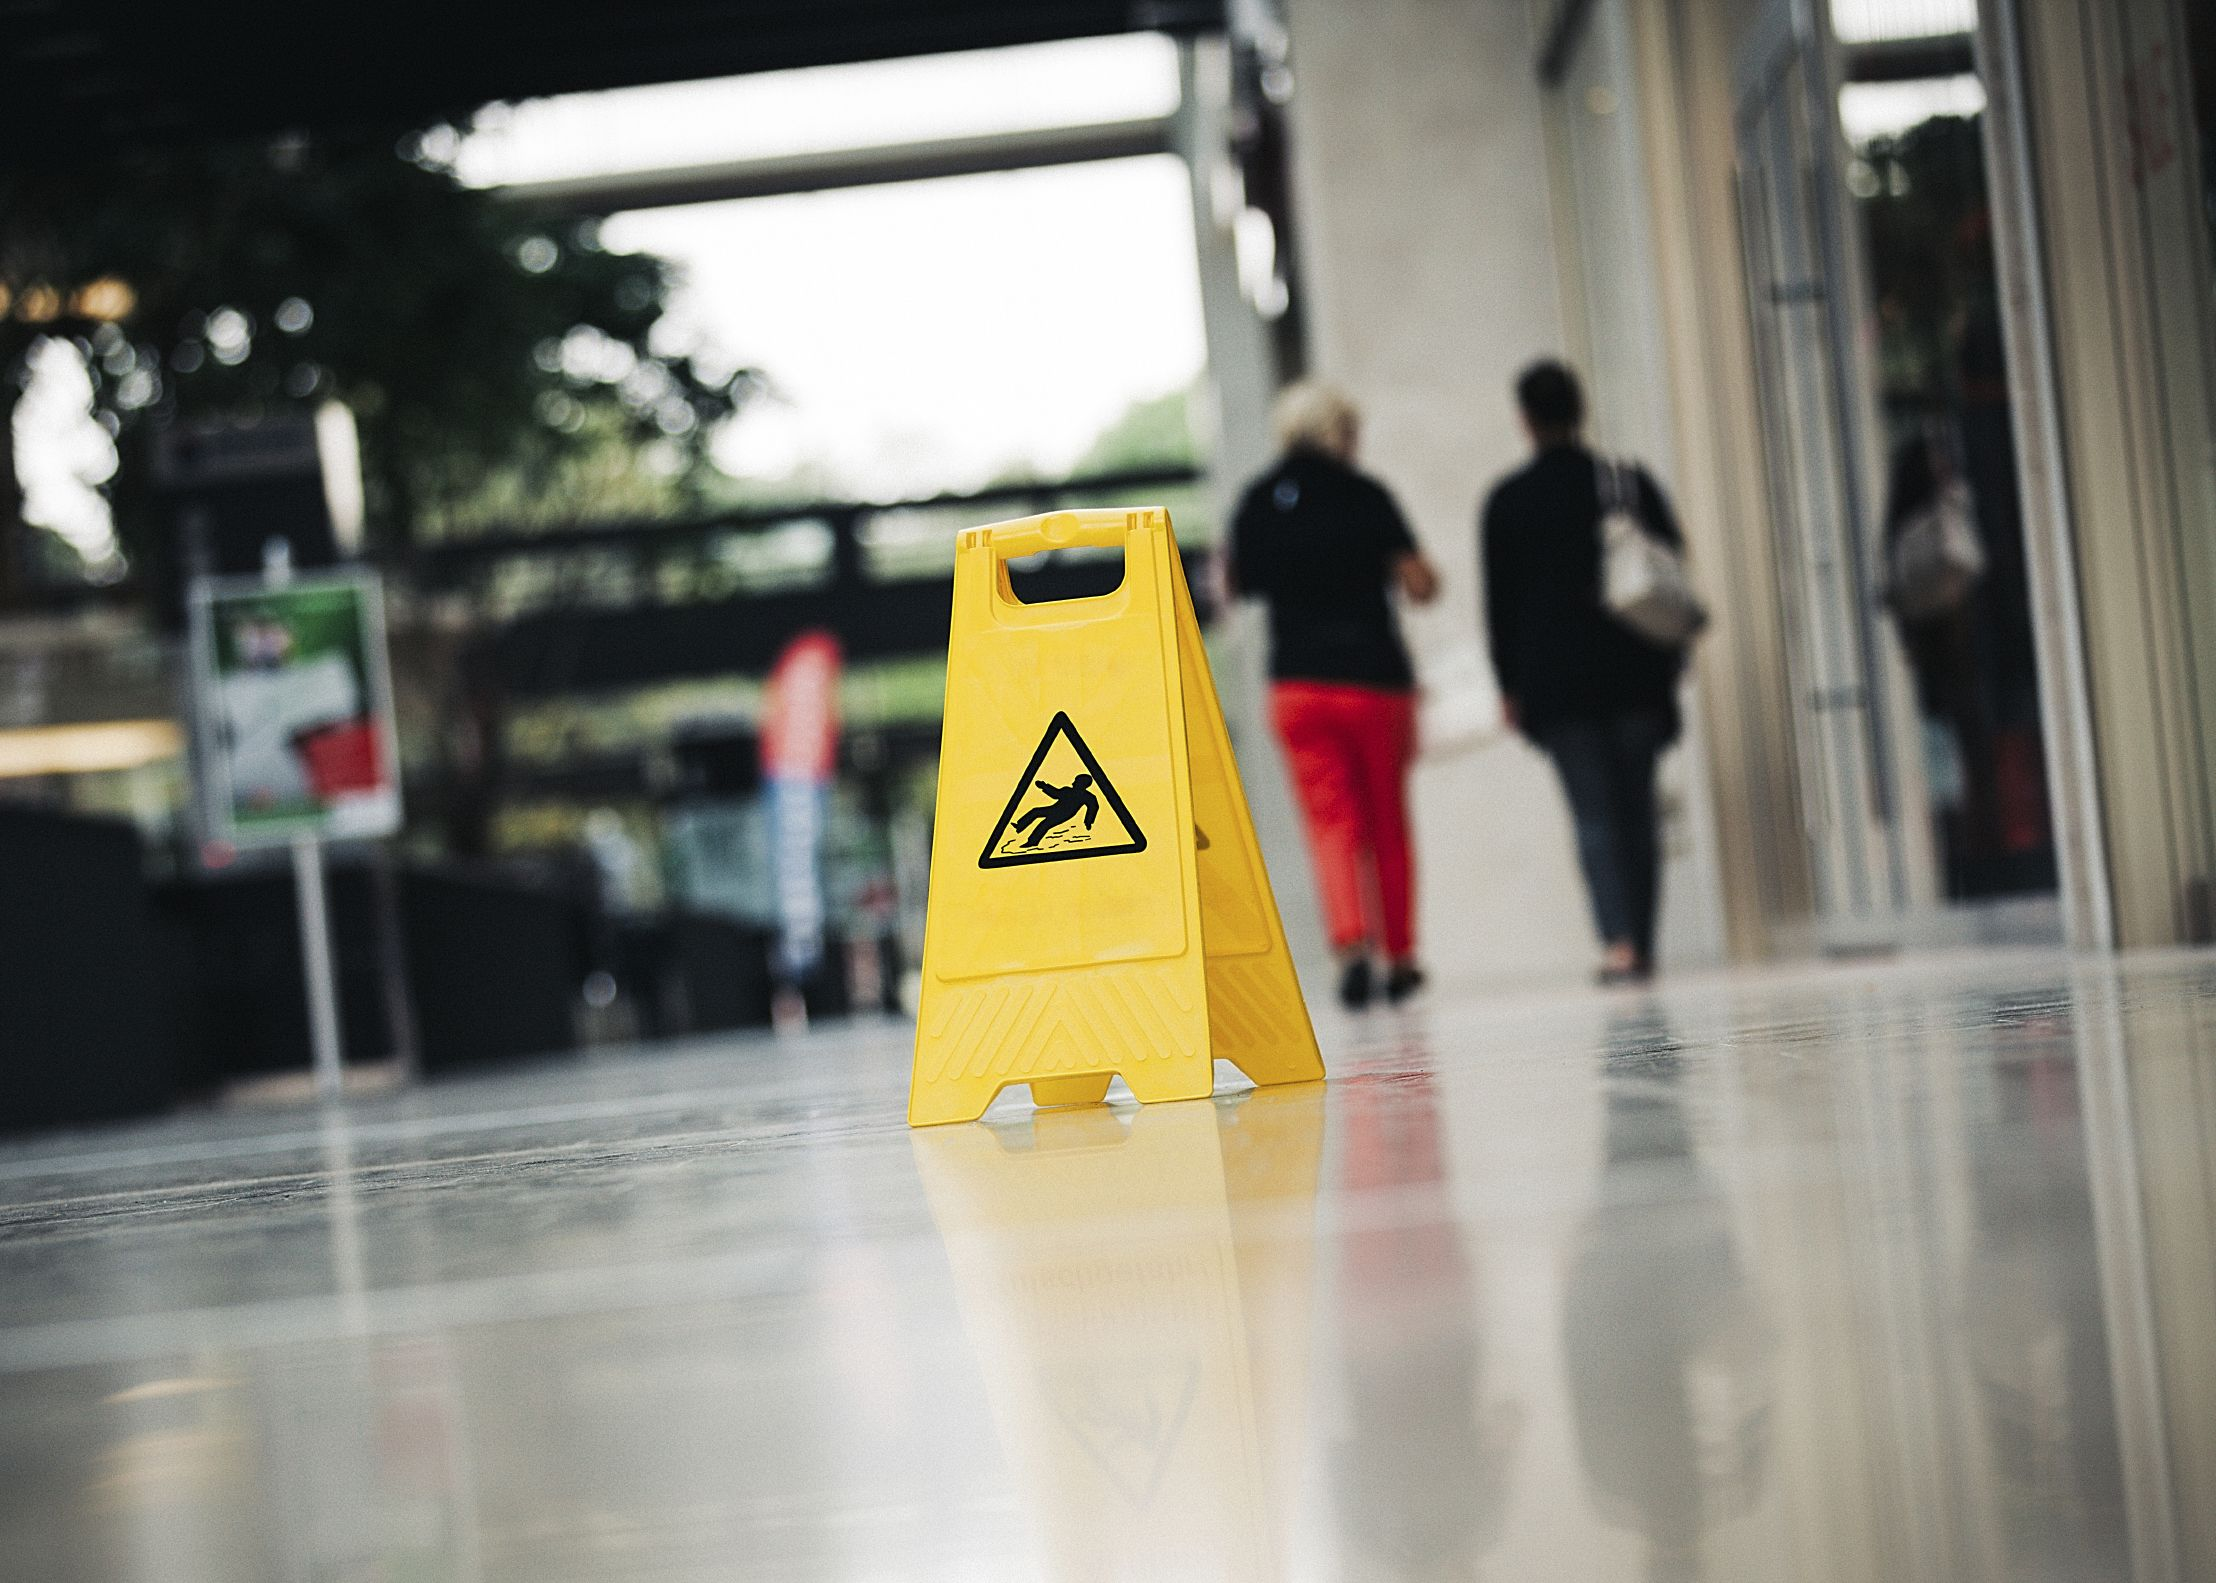 A sign indicating a wet floor and the possibility of a slip and fall accident